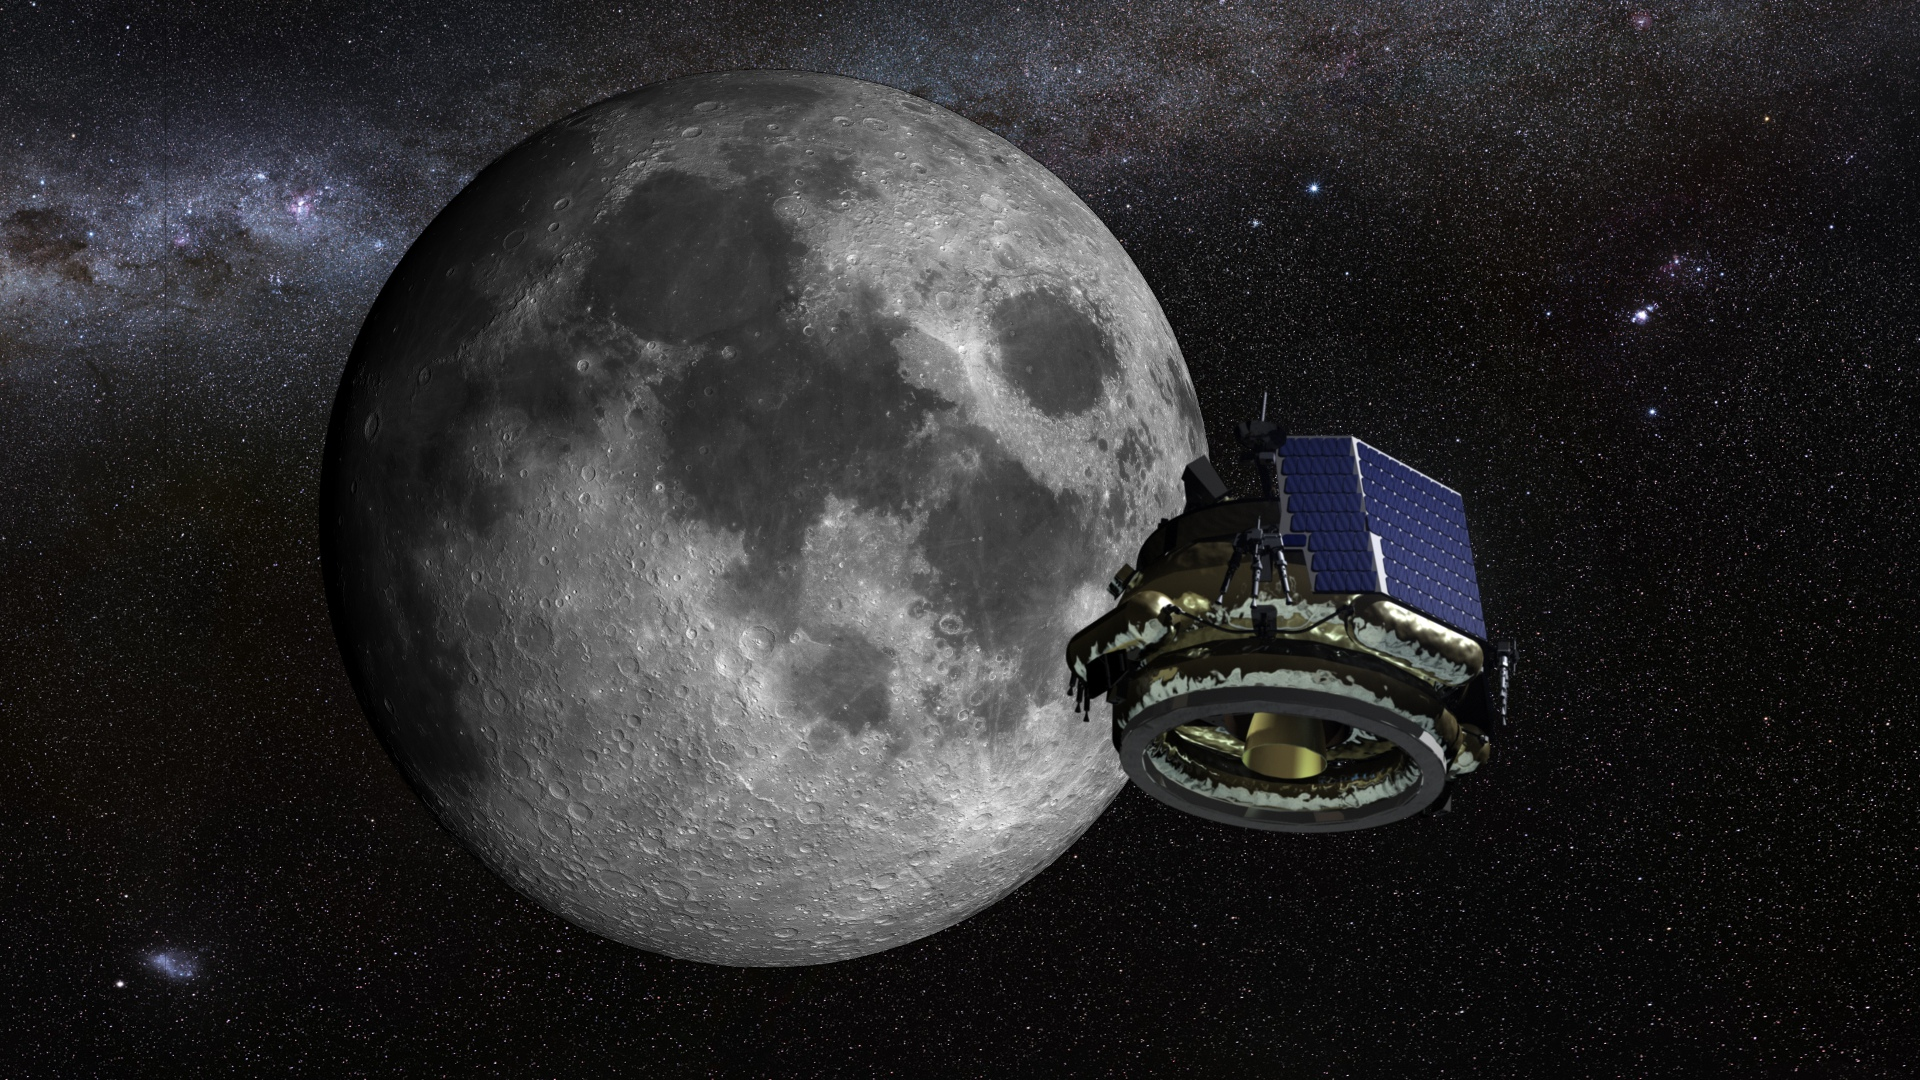 Artist's concept of the Moon Express MX-1 spacecraft flying to the moon. Credit: Moon Express